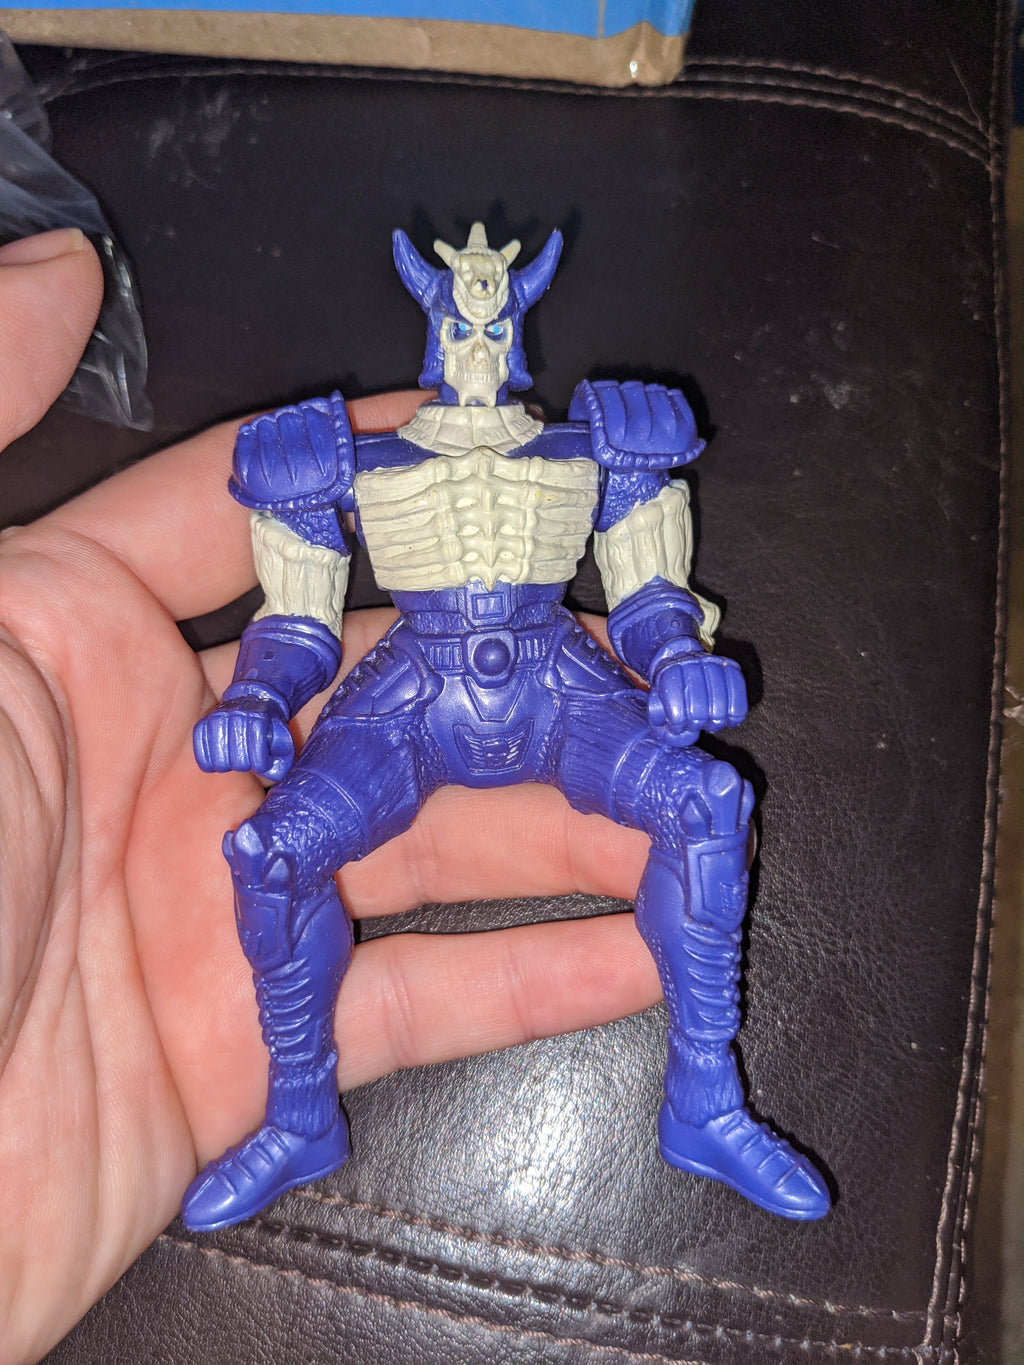 1999 Bandai Mystic Knights Of Tir Na Nog Bone Battering Ram Ice Lord Action Figure